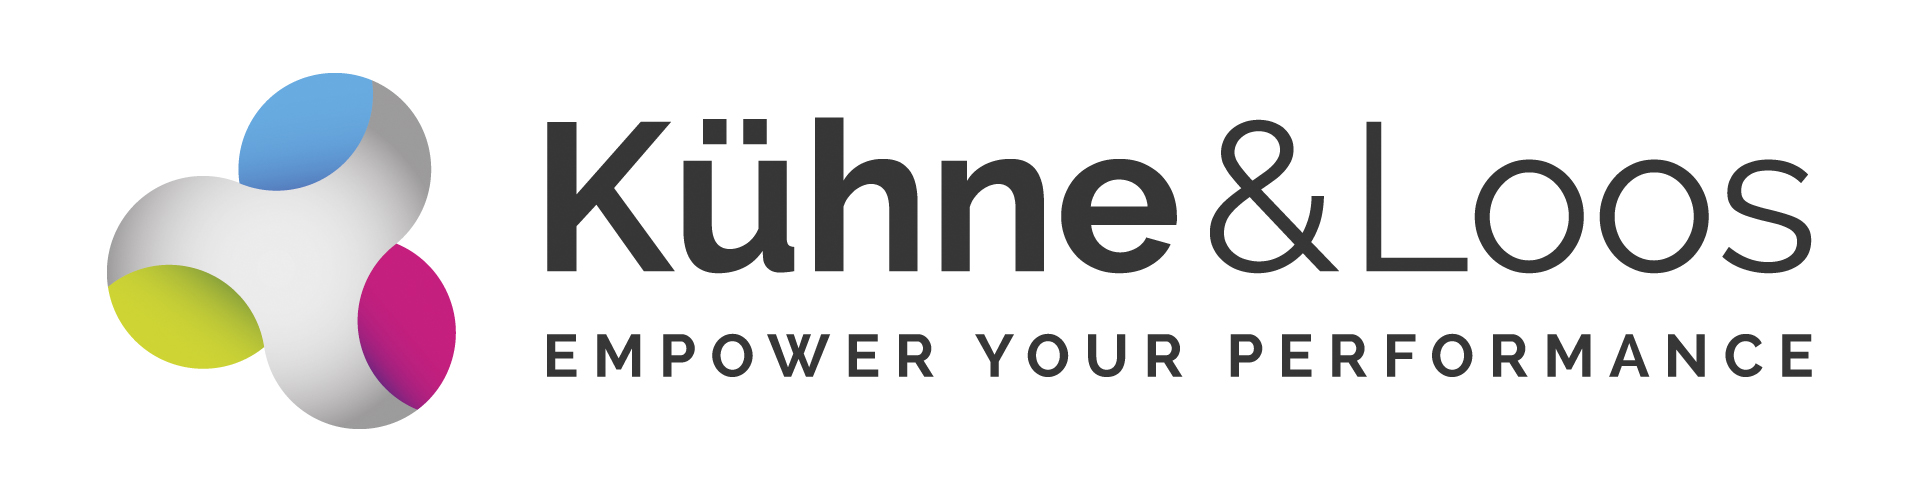 Affiliate Marketing Agentur Kühne & Loos Logo